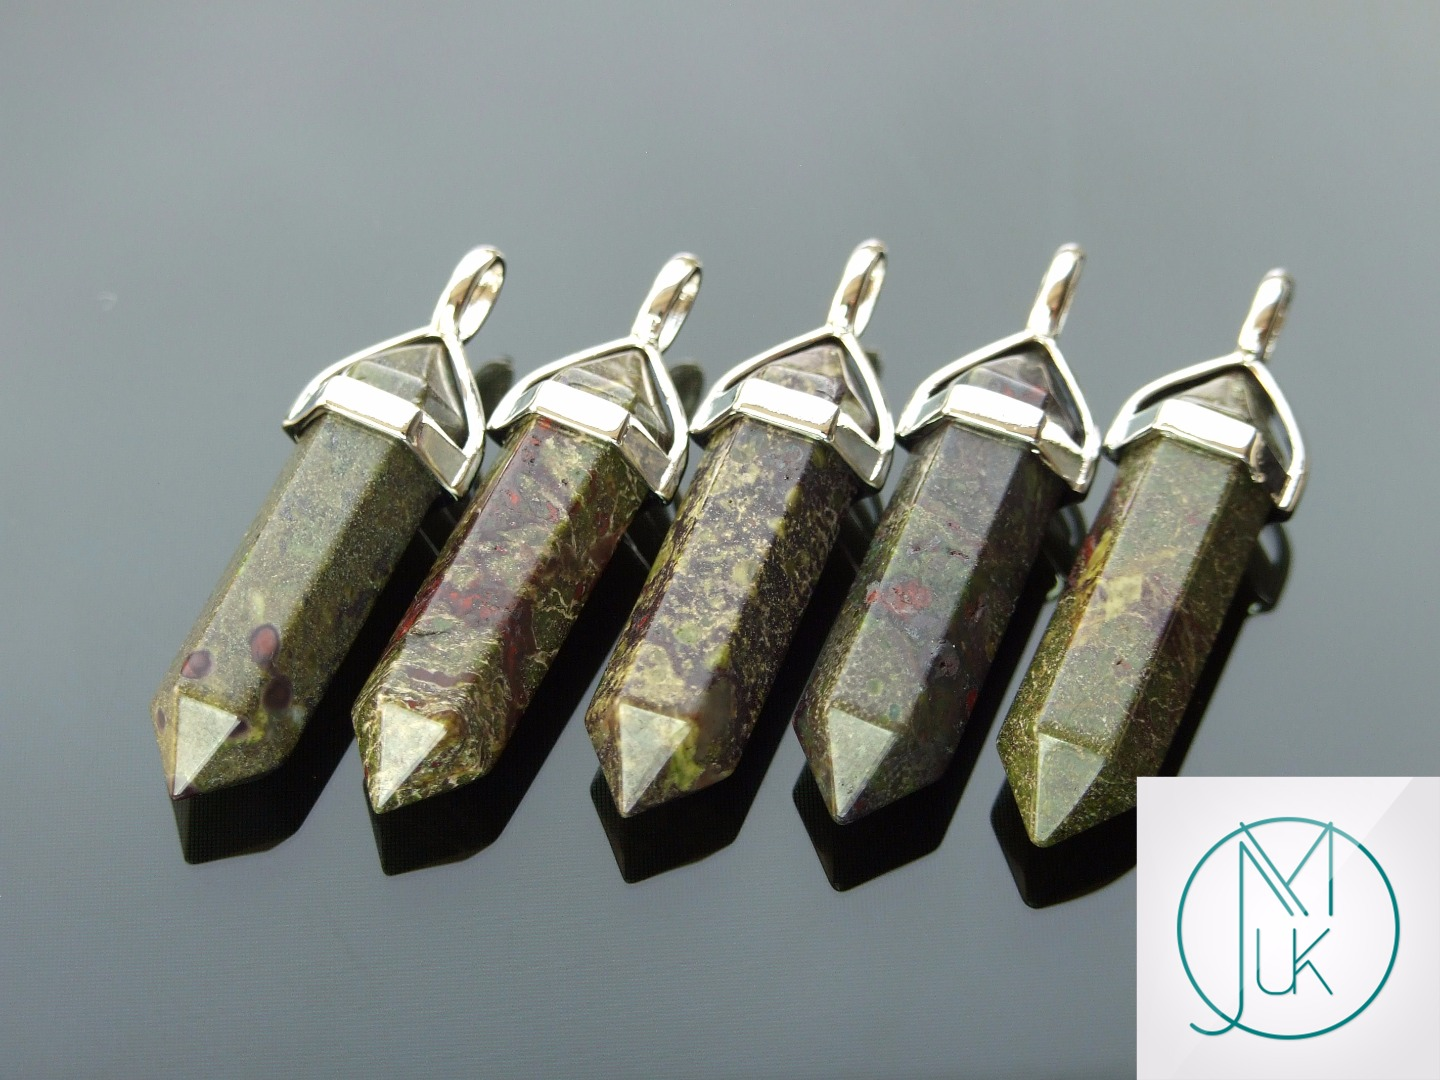 Gemstone-Pendant-for-Necklace-Manmade-or-Natural-Quartz-Crystal-Healing-Stone thumbnail 90